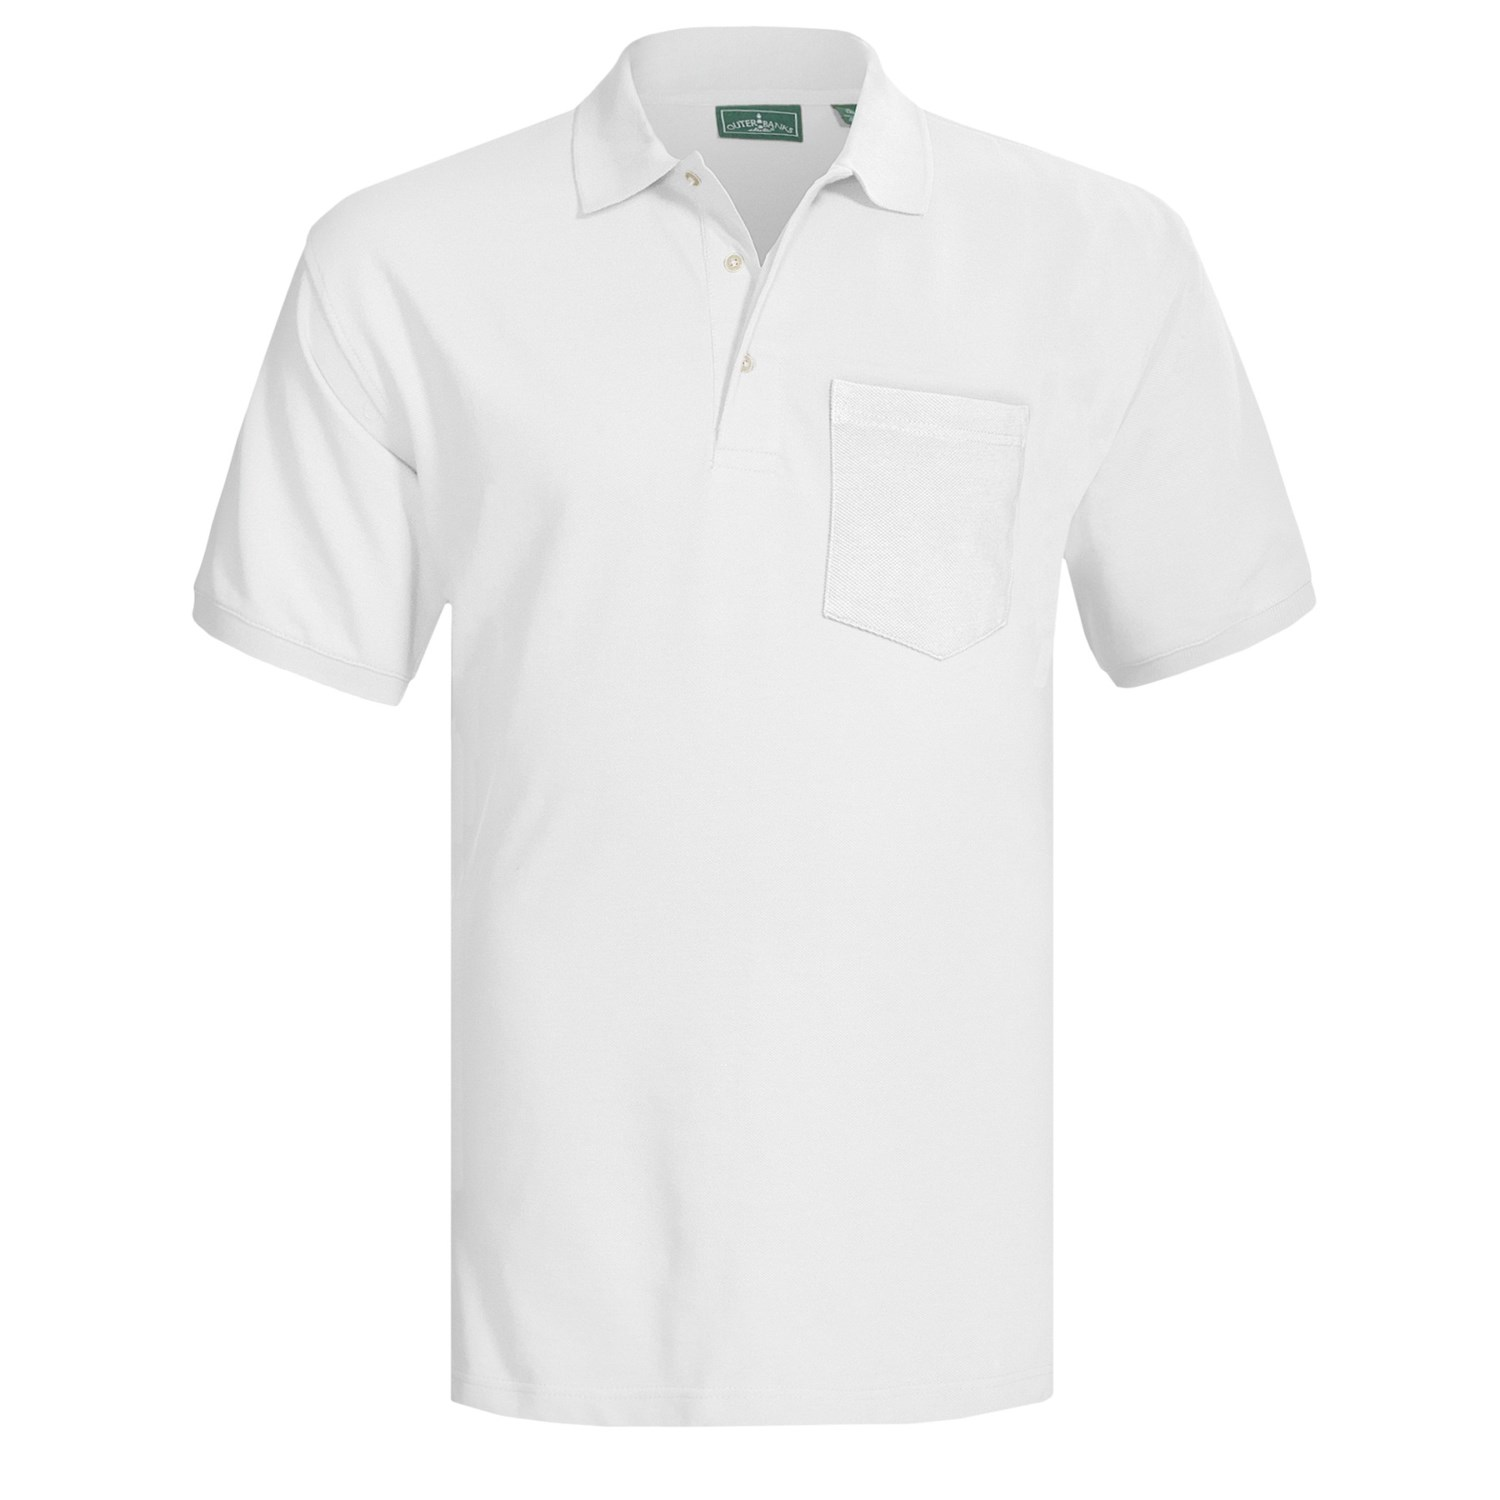 Cotton polo shirts pocket for Short sleeve polo shirt with pocket